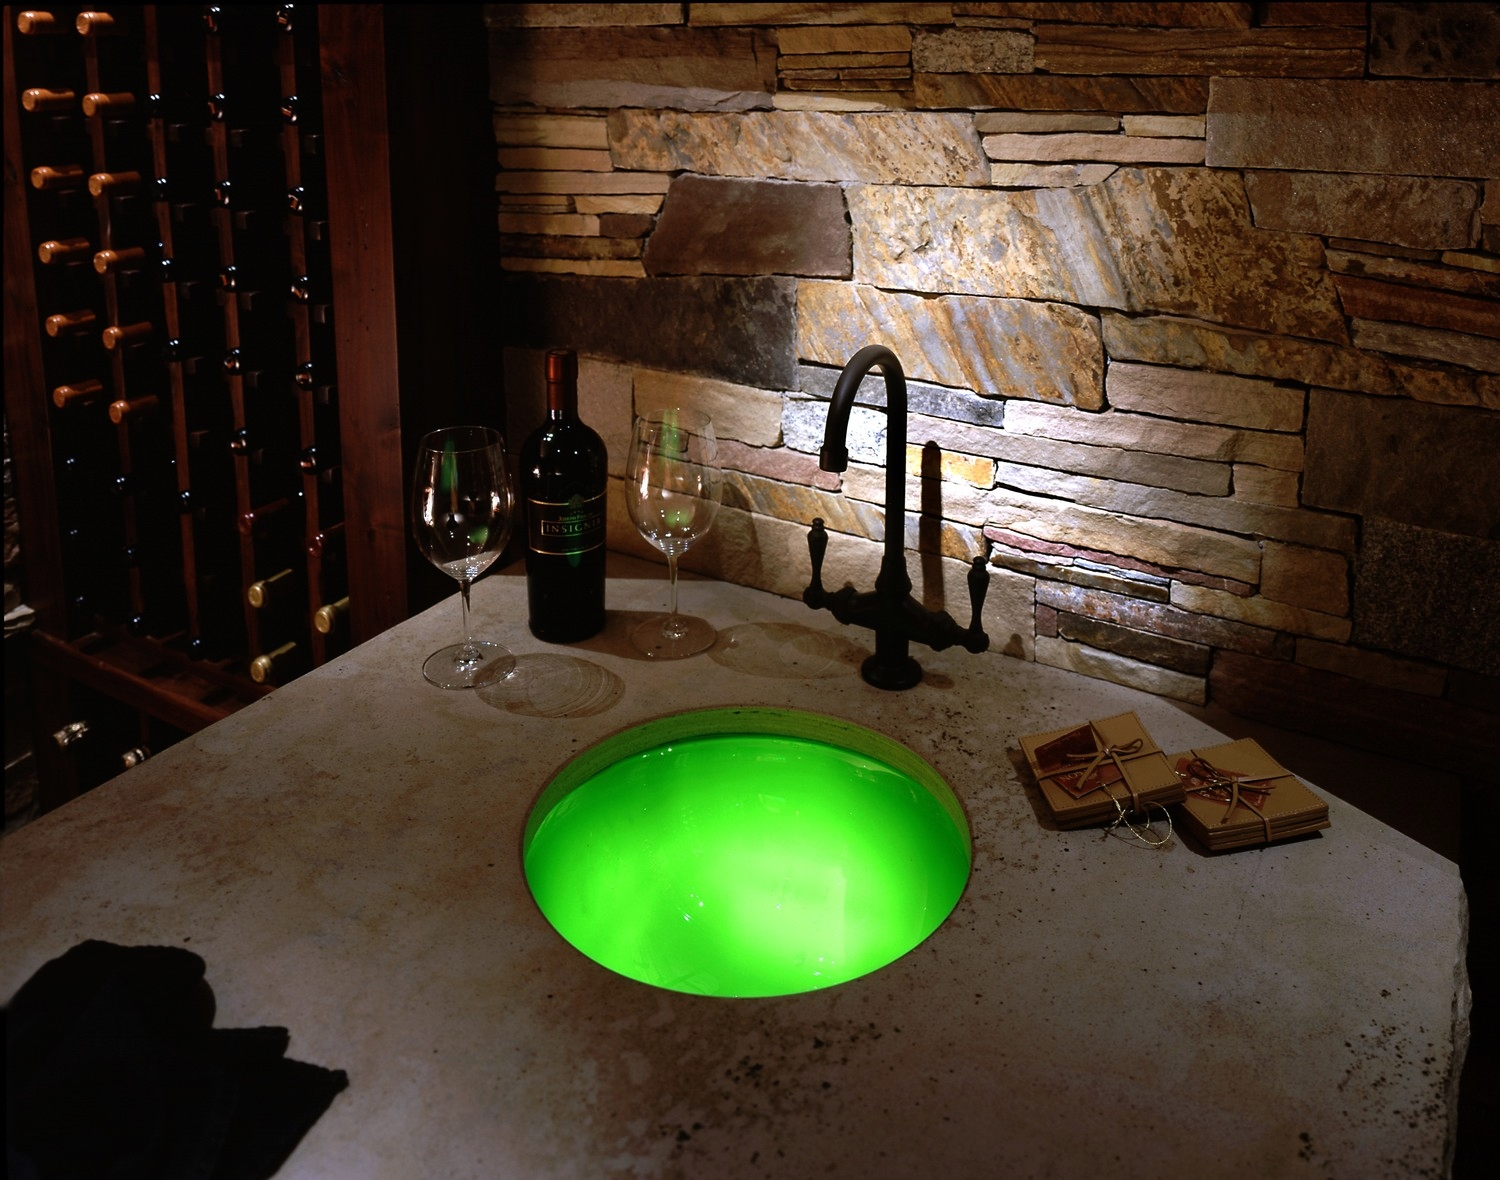 Fiber Optic illuminated stone wall with Dim-able back lit LED frosted glass sink, adjustable to up to 16 million colors.